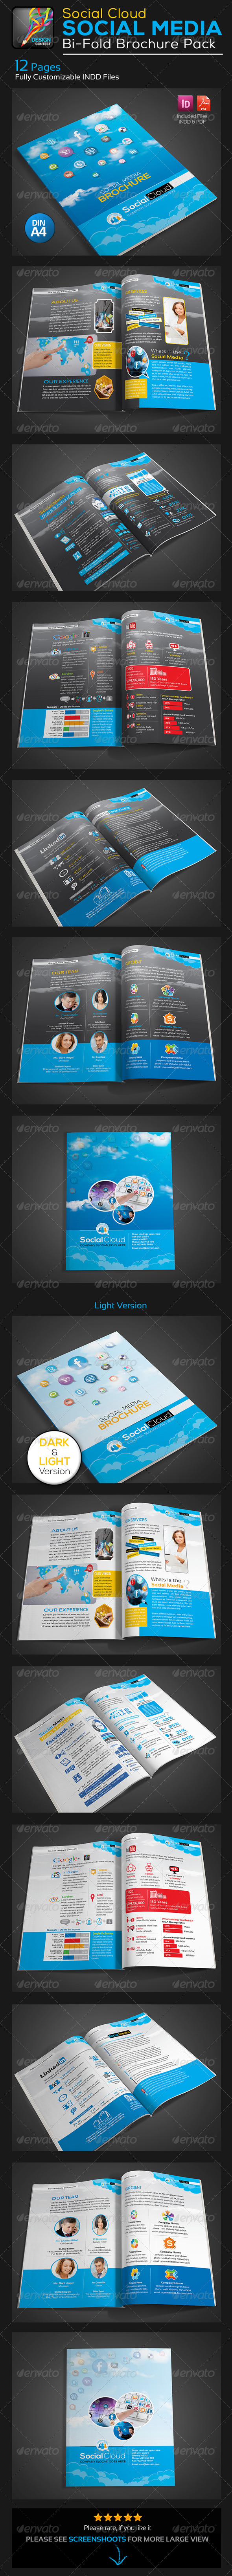 GraphicRiver Social Cloud Social Media 12 Pages Brochure 5742910